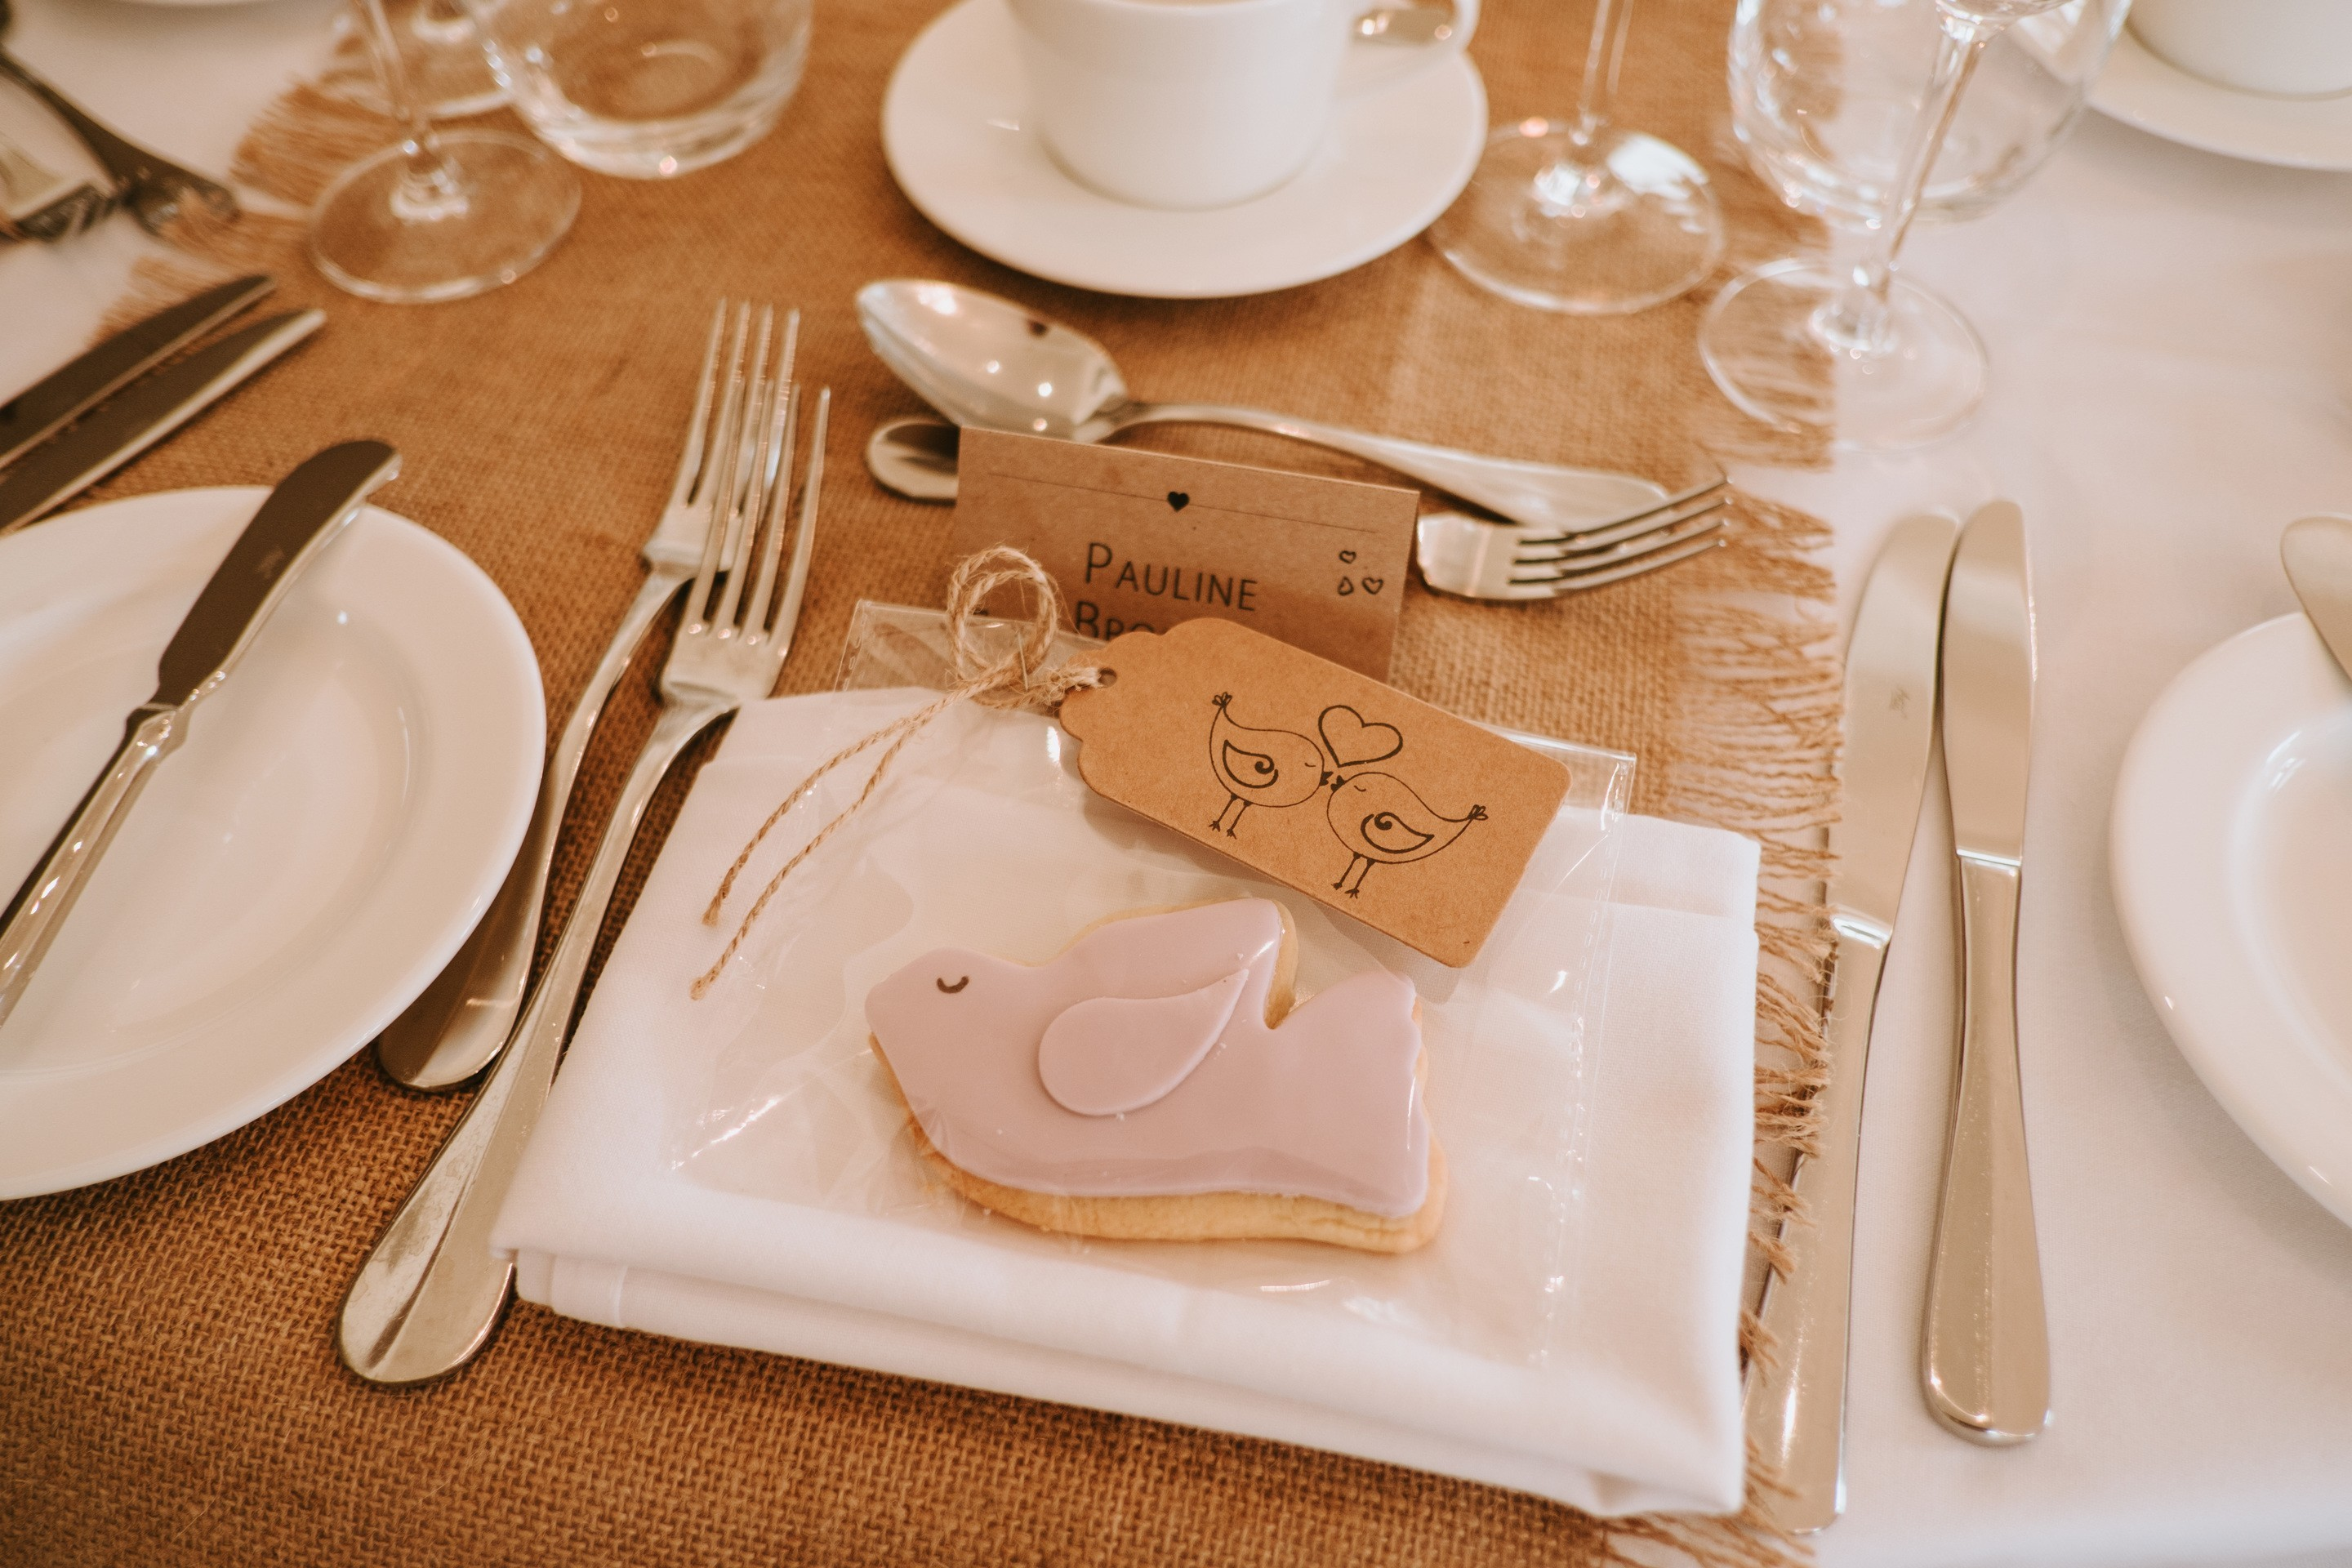 wedding favours, wedding planning, wedding ideas